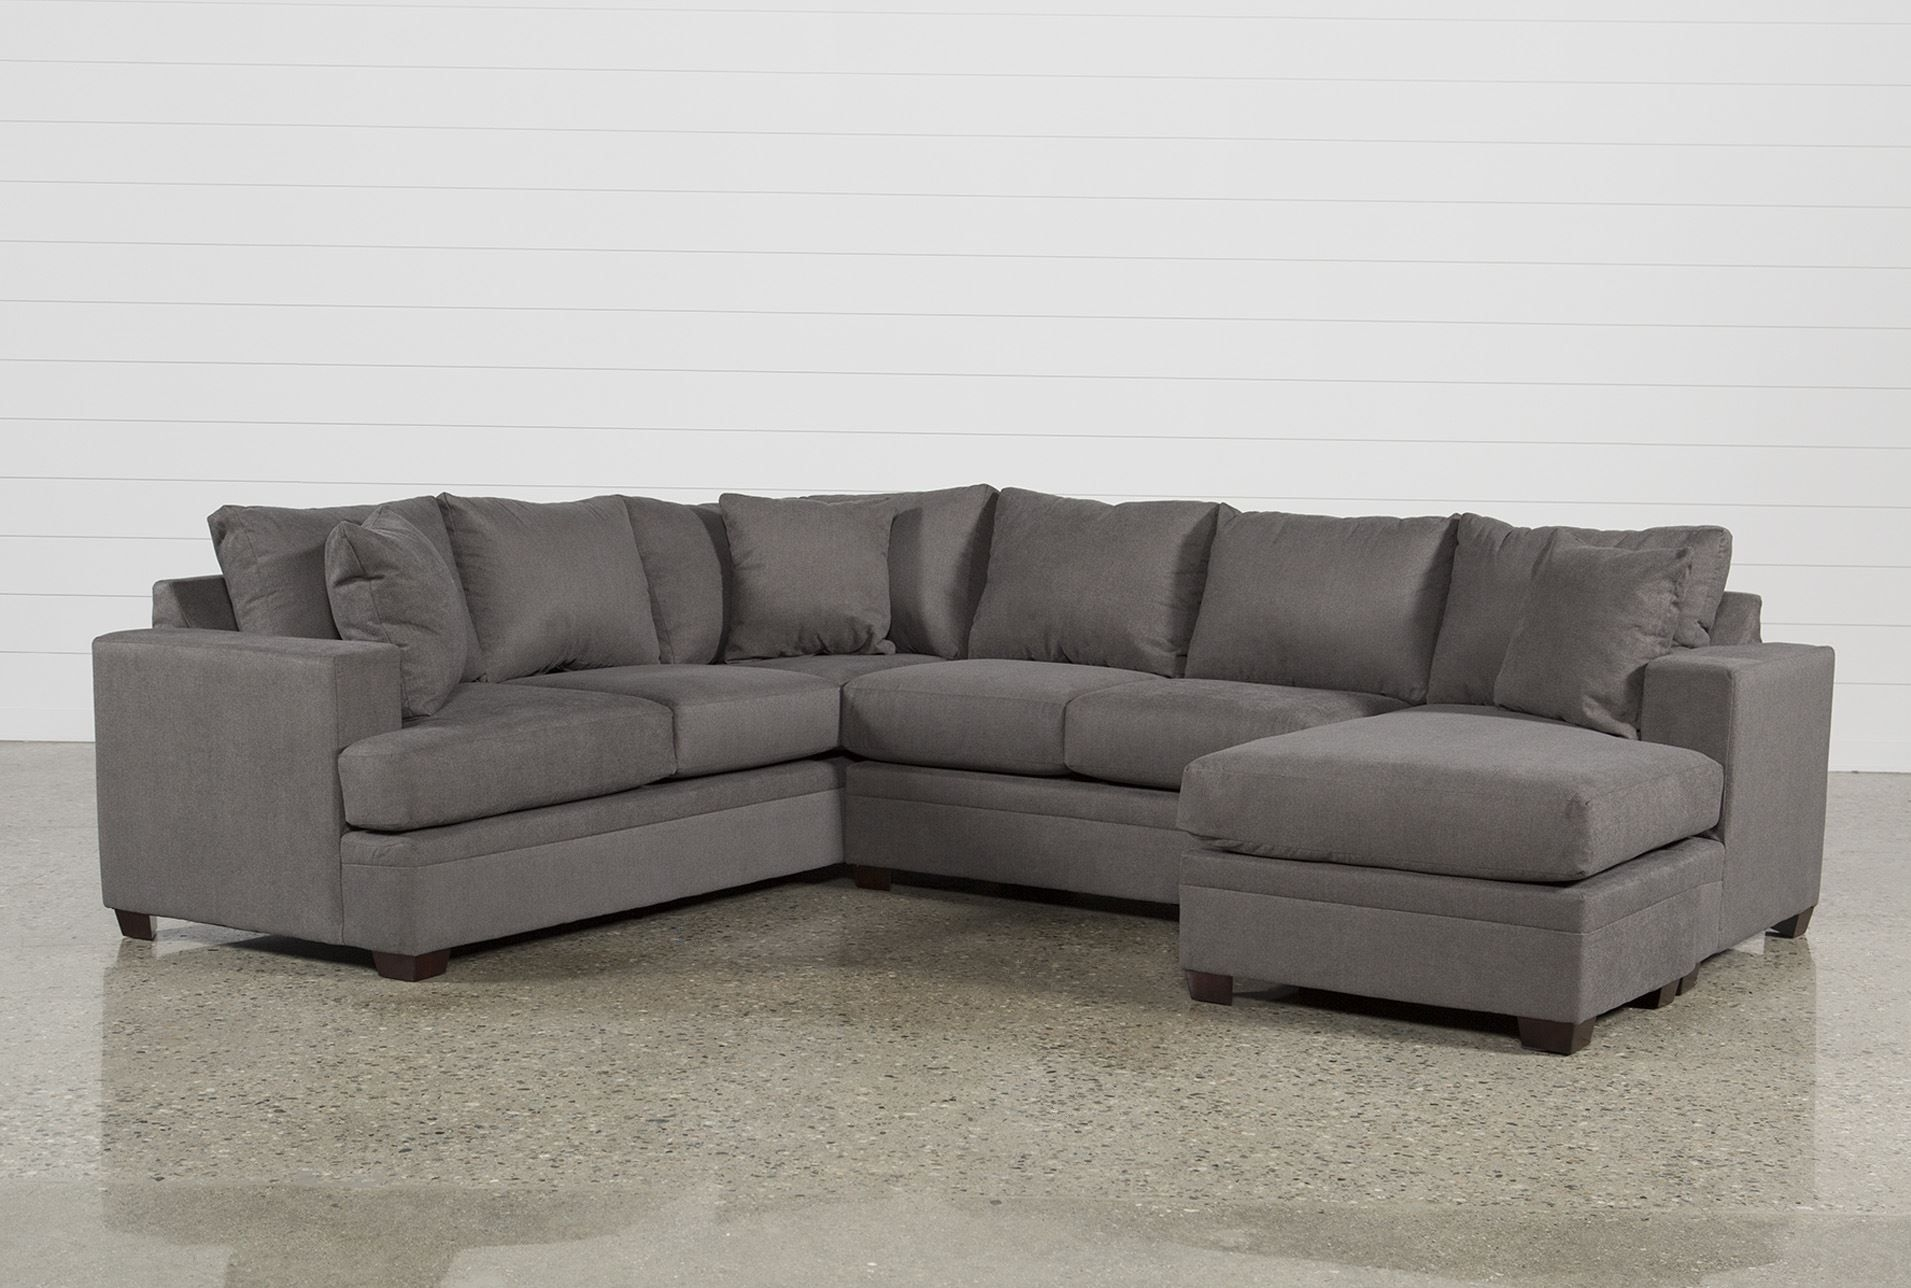 Kerri 2 Piece Sectional W/raf Chaise In 2018 | Products | Pinterest Within Aquarius Dark Grey 2 Piece Sectionals With Raf Chaise (Image 8 of 25)